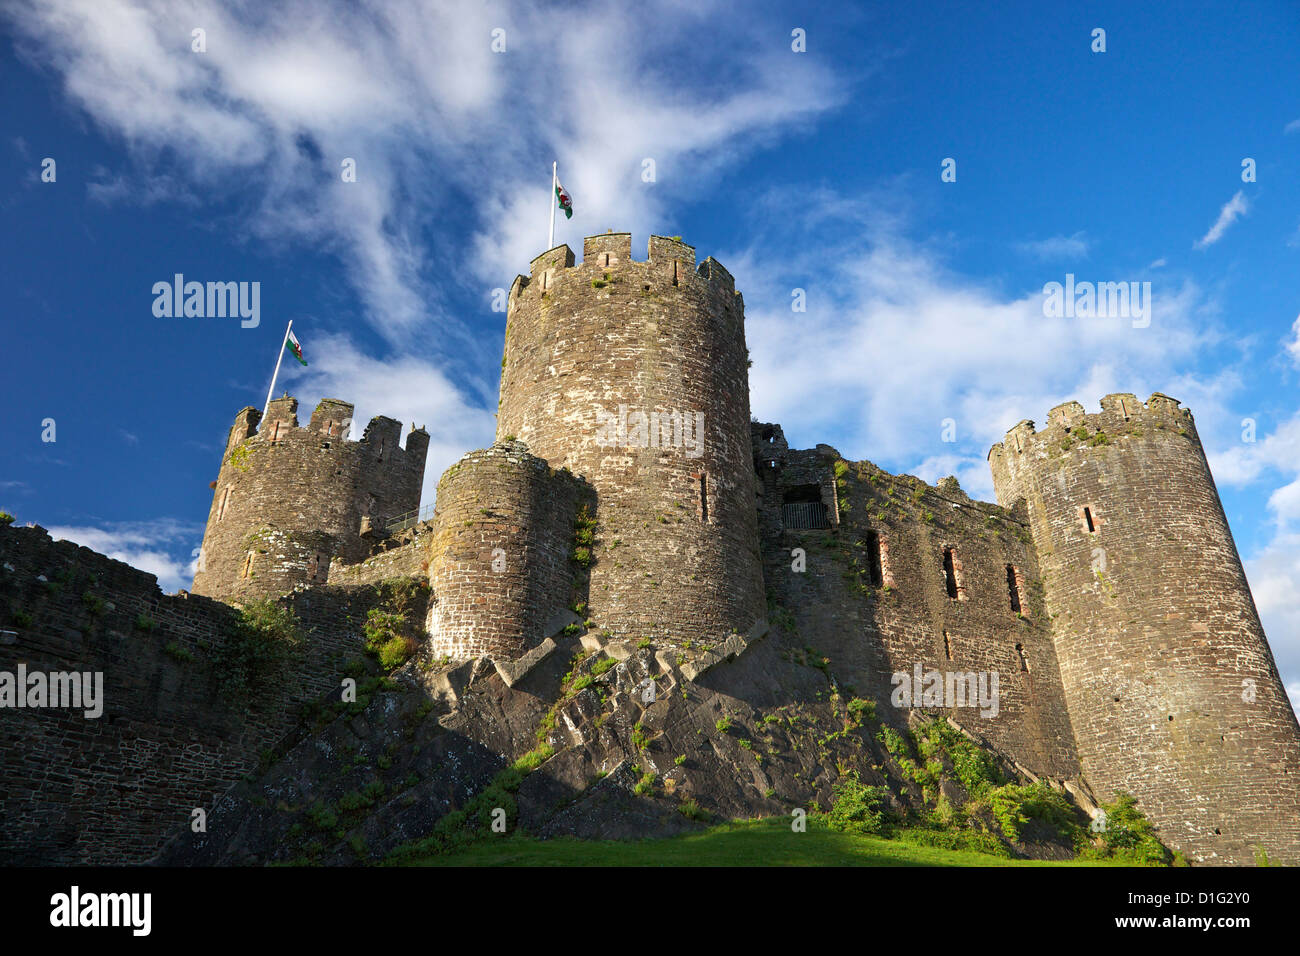 Conwy medieval castle in summer, UNESCO World Heritage Site, Gwynedd, North Wales, United Kingdom, Europe - Stock Image